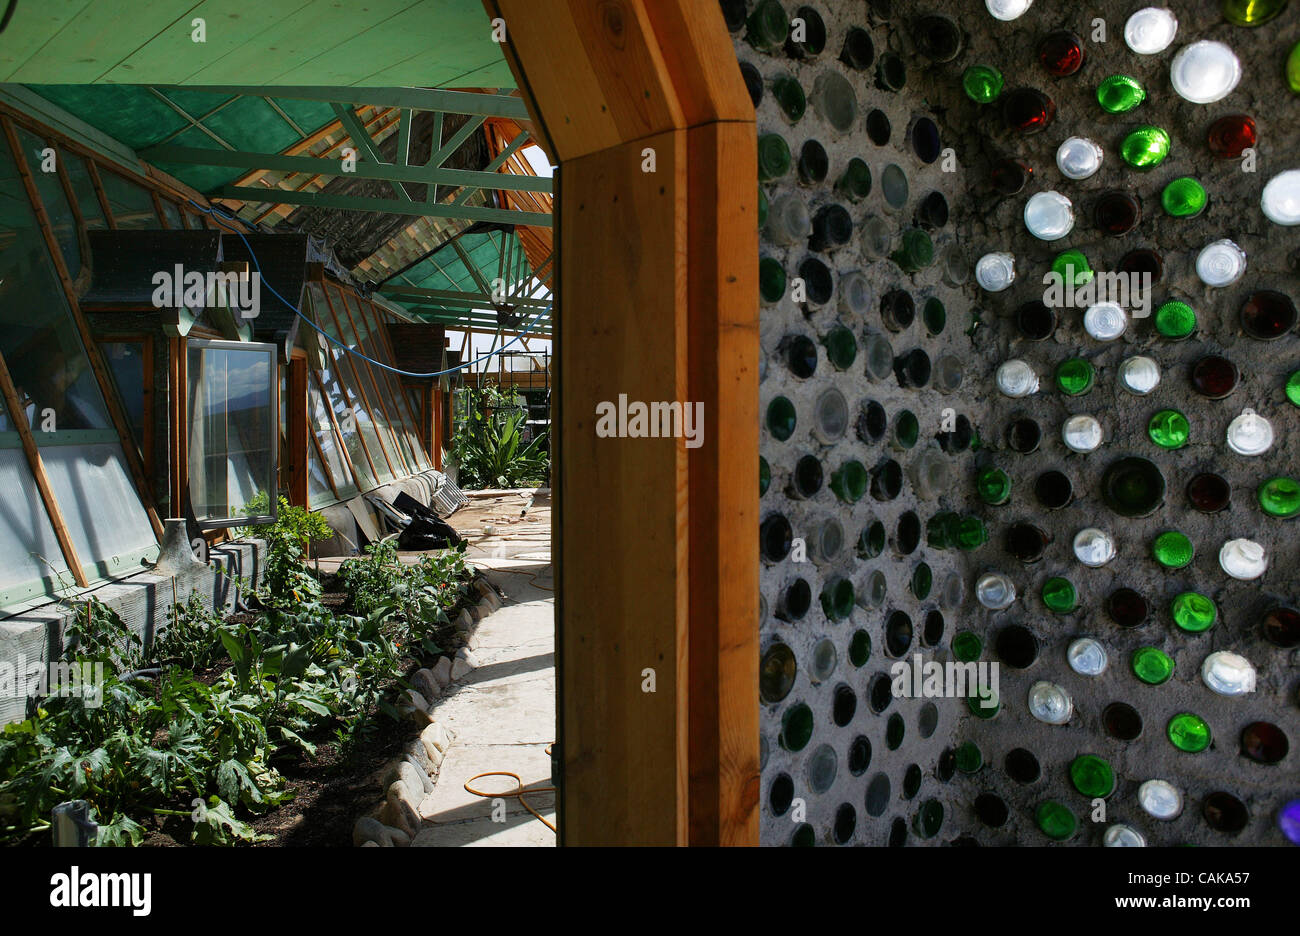 Swell An Earthship A House Made Of Recycled Tires Bottles And Interior Design Ideas Philsoteloinfo